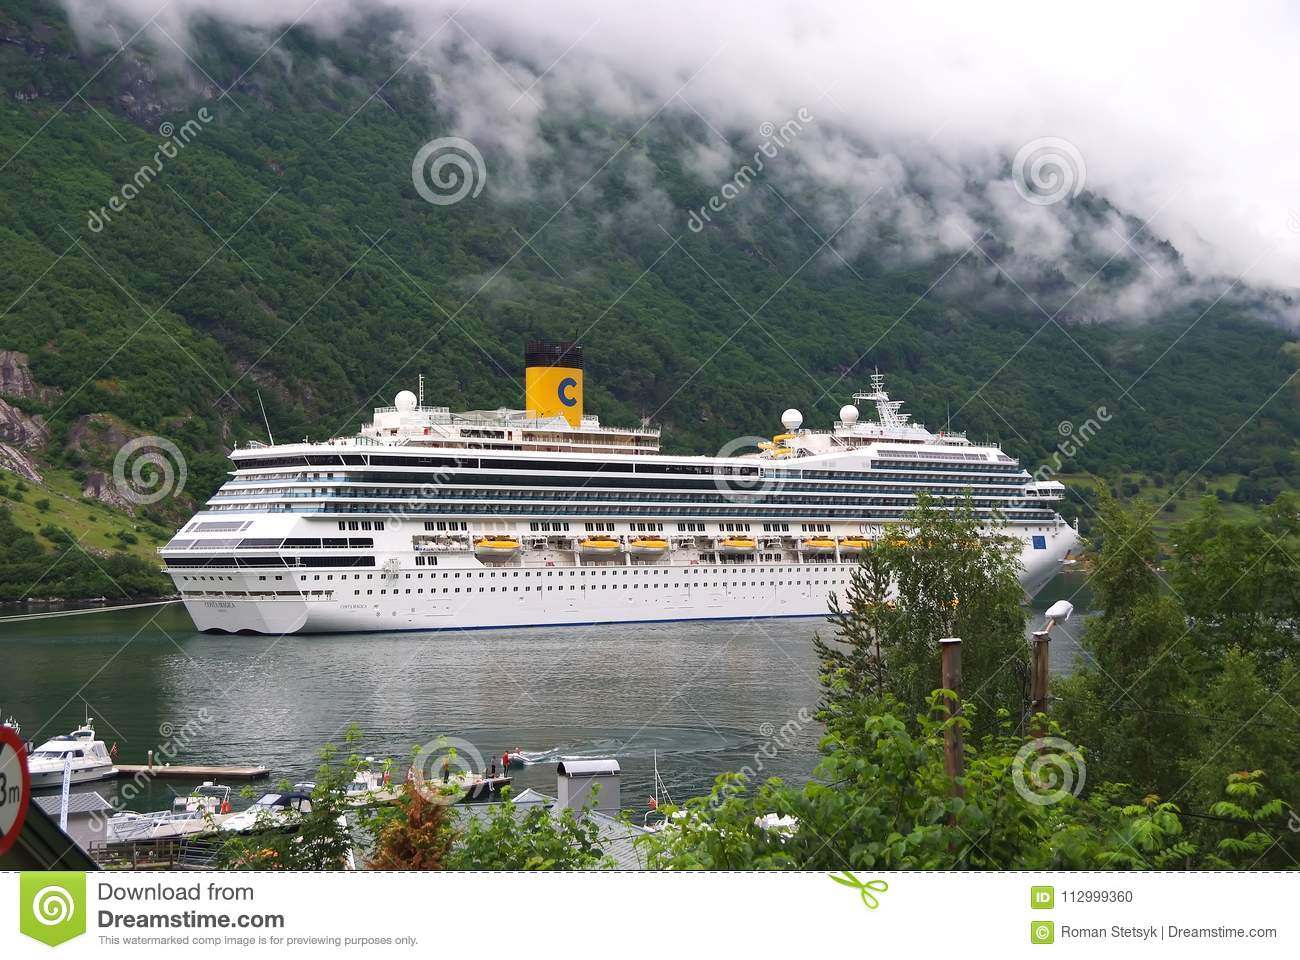 Geiranger, Norway - January 25, 2010: cruise ship in norwegian fjord. Travel destination, tourism. Adventure, discovery, journey.